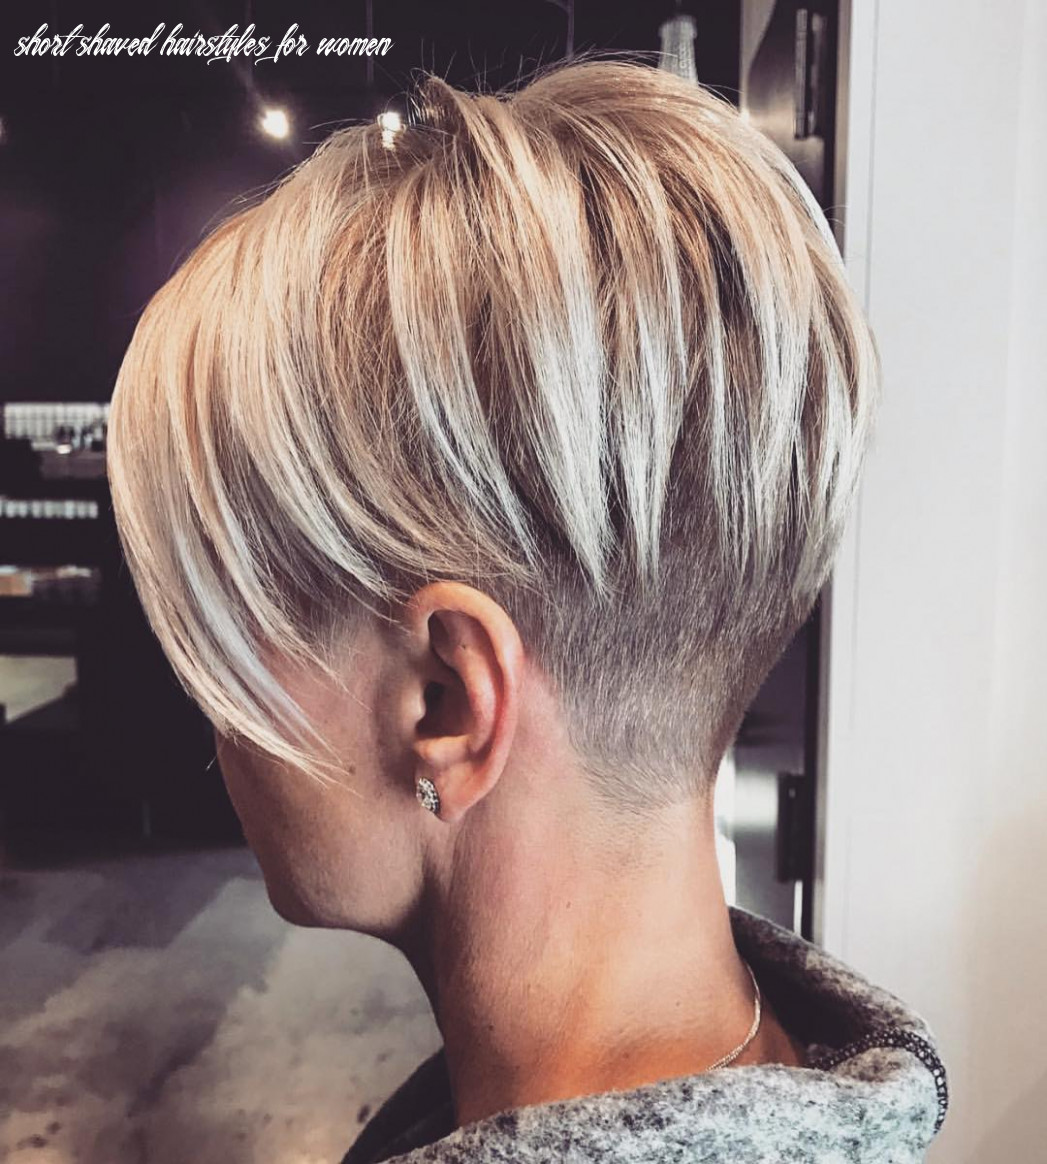 11 chic shaved haircuts for short hair 11 short shaved hairstyles for women